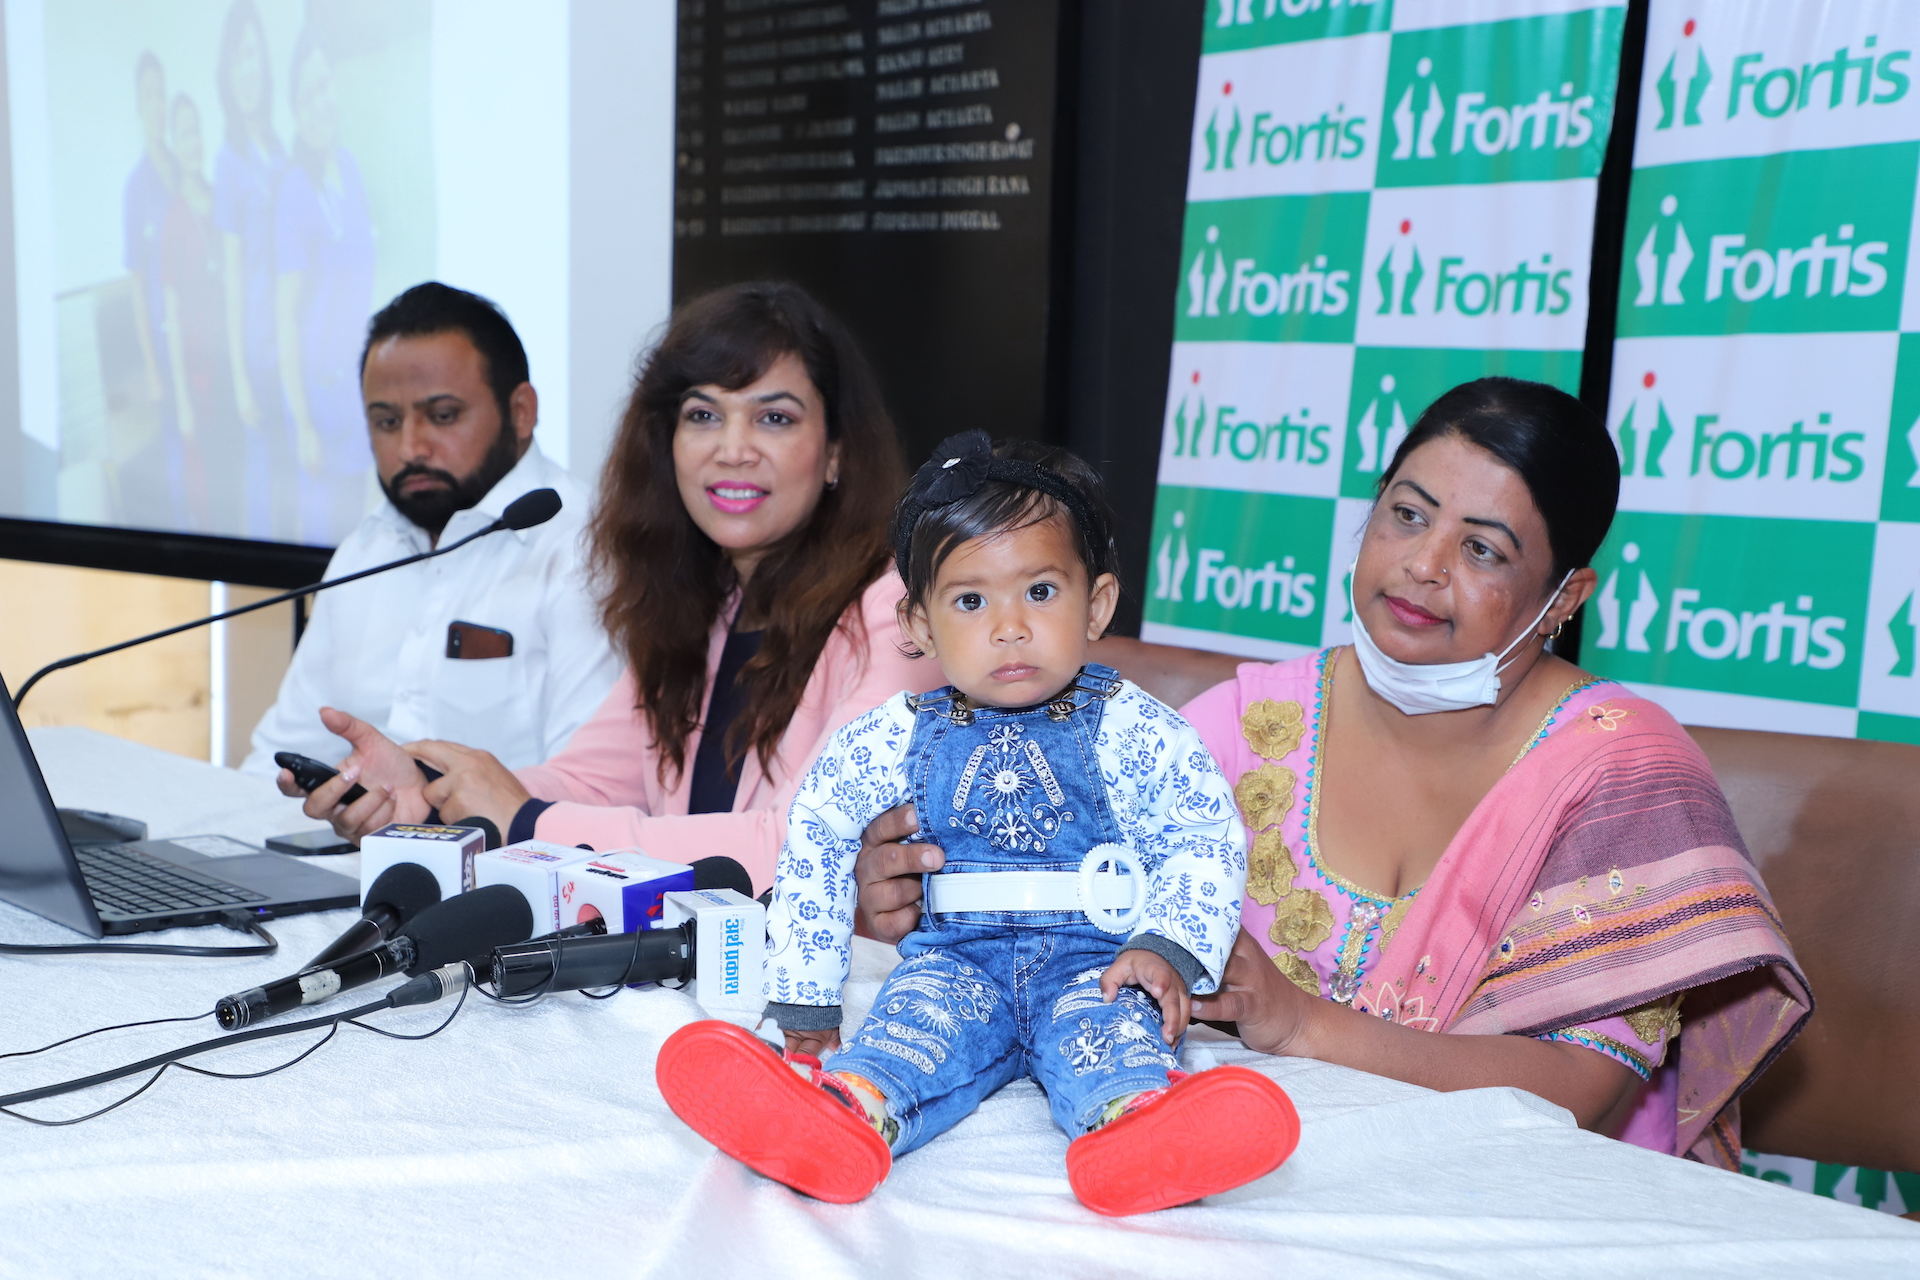 40 years old woman with multiple abortions&a heart vessel stenting delivers a baby girl at Fortis